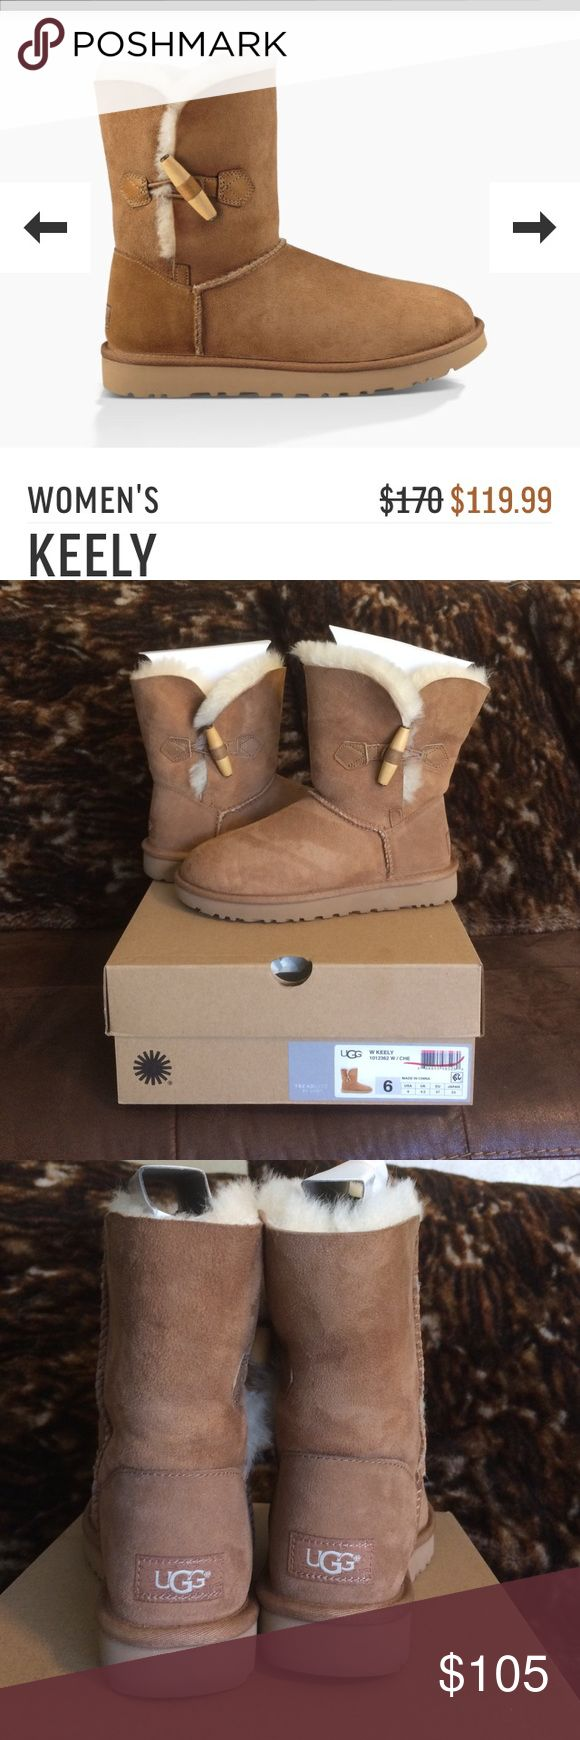 Keely Women's UGG Boots New never used original ugg boots. Color Chestnut. Have original box. UGG Shoes Winter & Rain Boots